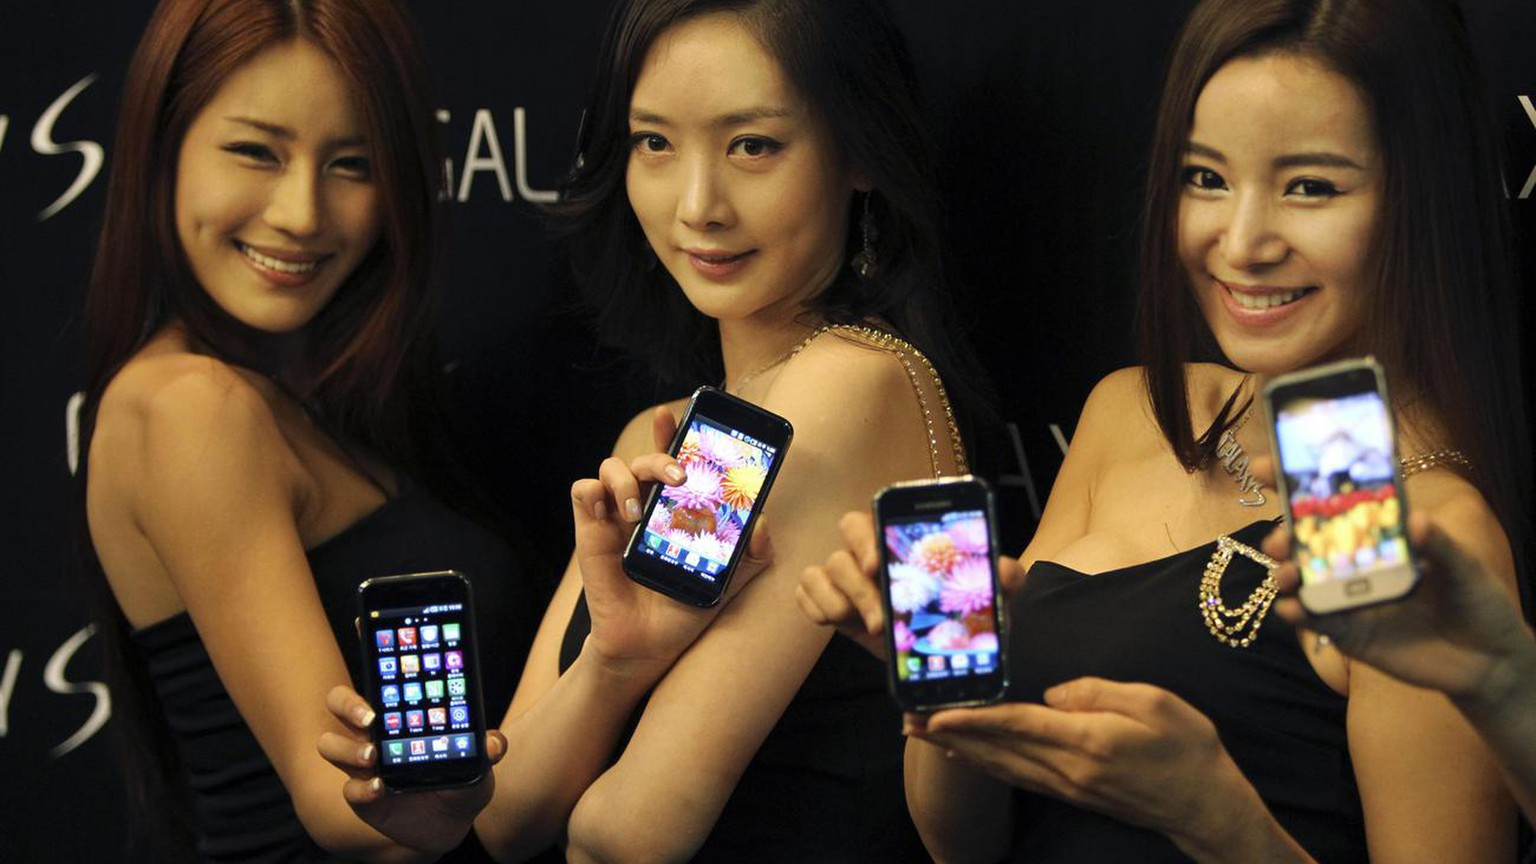 Models display Samsung's new Galaxy phones running Google's new operating system Android at the Samsung headquarters during a media launch Tuesday, June 8, 2010, in Seoul, South Korea.  (AP Photo/Wally Santana)